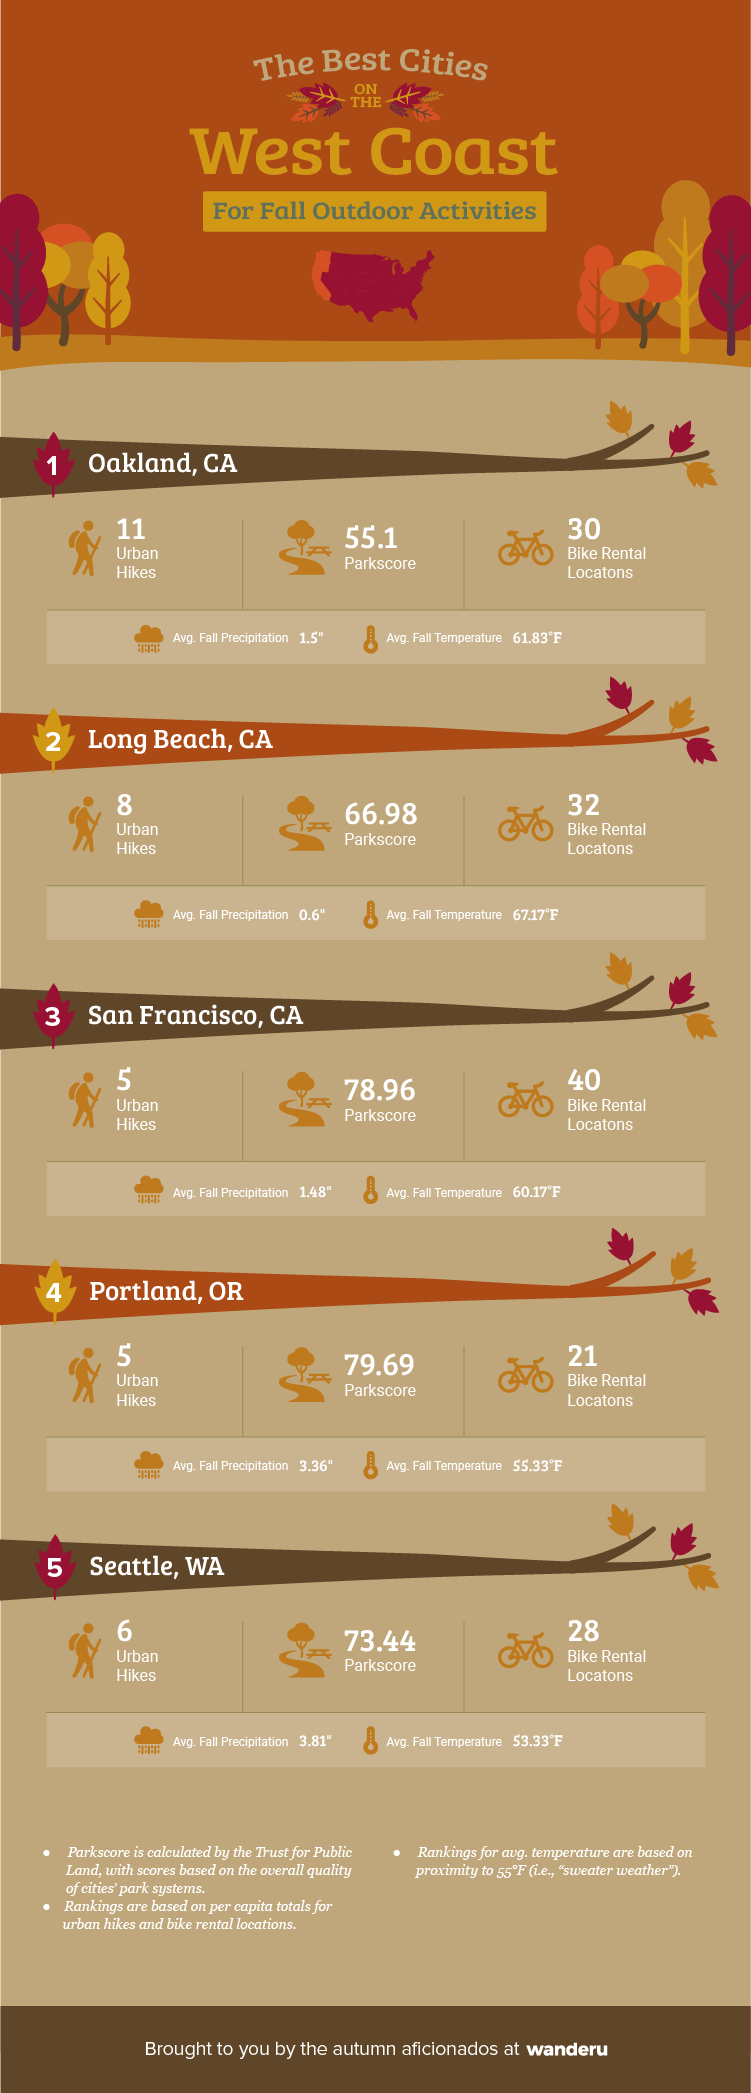 Ranking of the top five cities in the West Coast for outdoor activities.